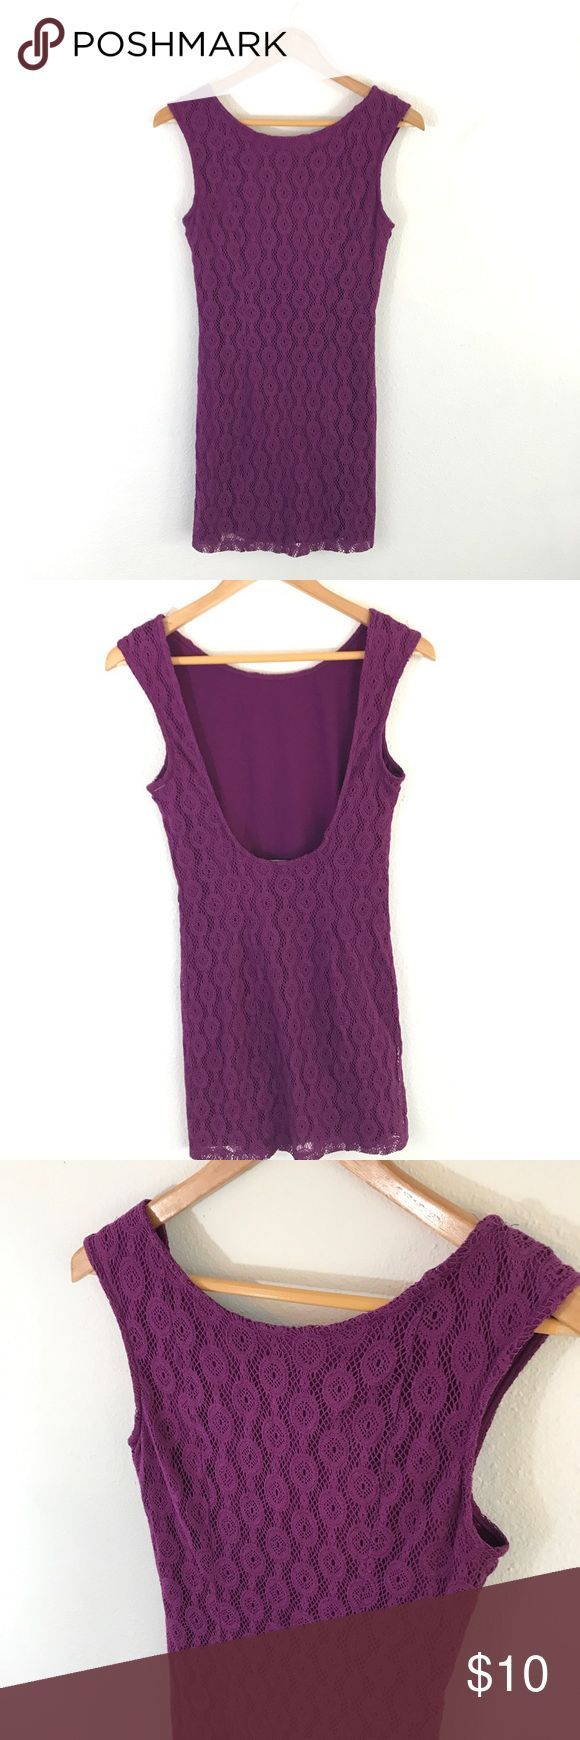 Purple Lace Dress Beautiful color, perfect for spring and summer but could Aldo pair with black tights to layer for colder months. Beautiful Bodycon style mini. Pair with hills for a night out! Forever 21 Dresses